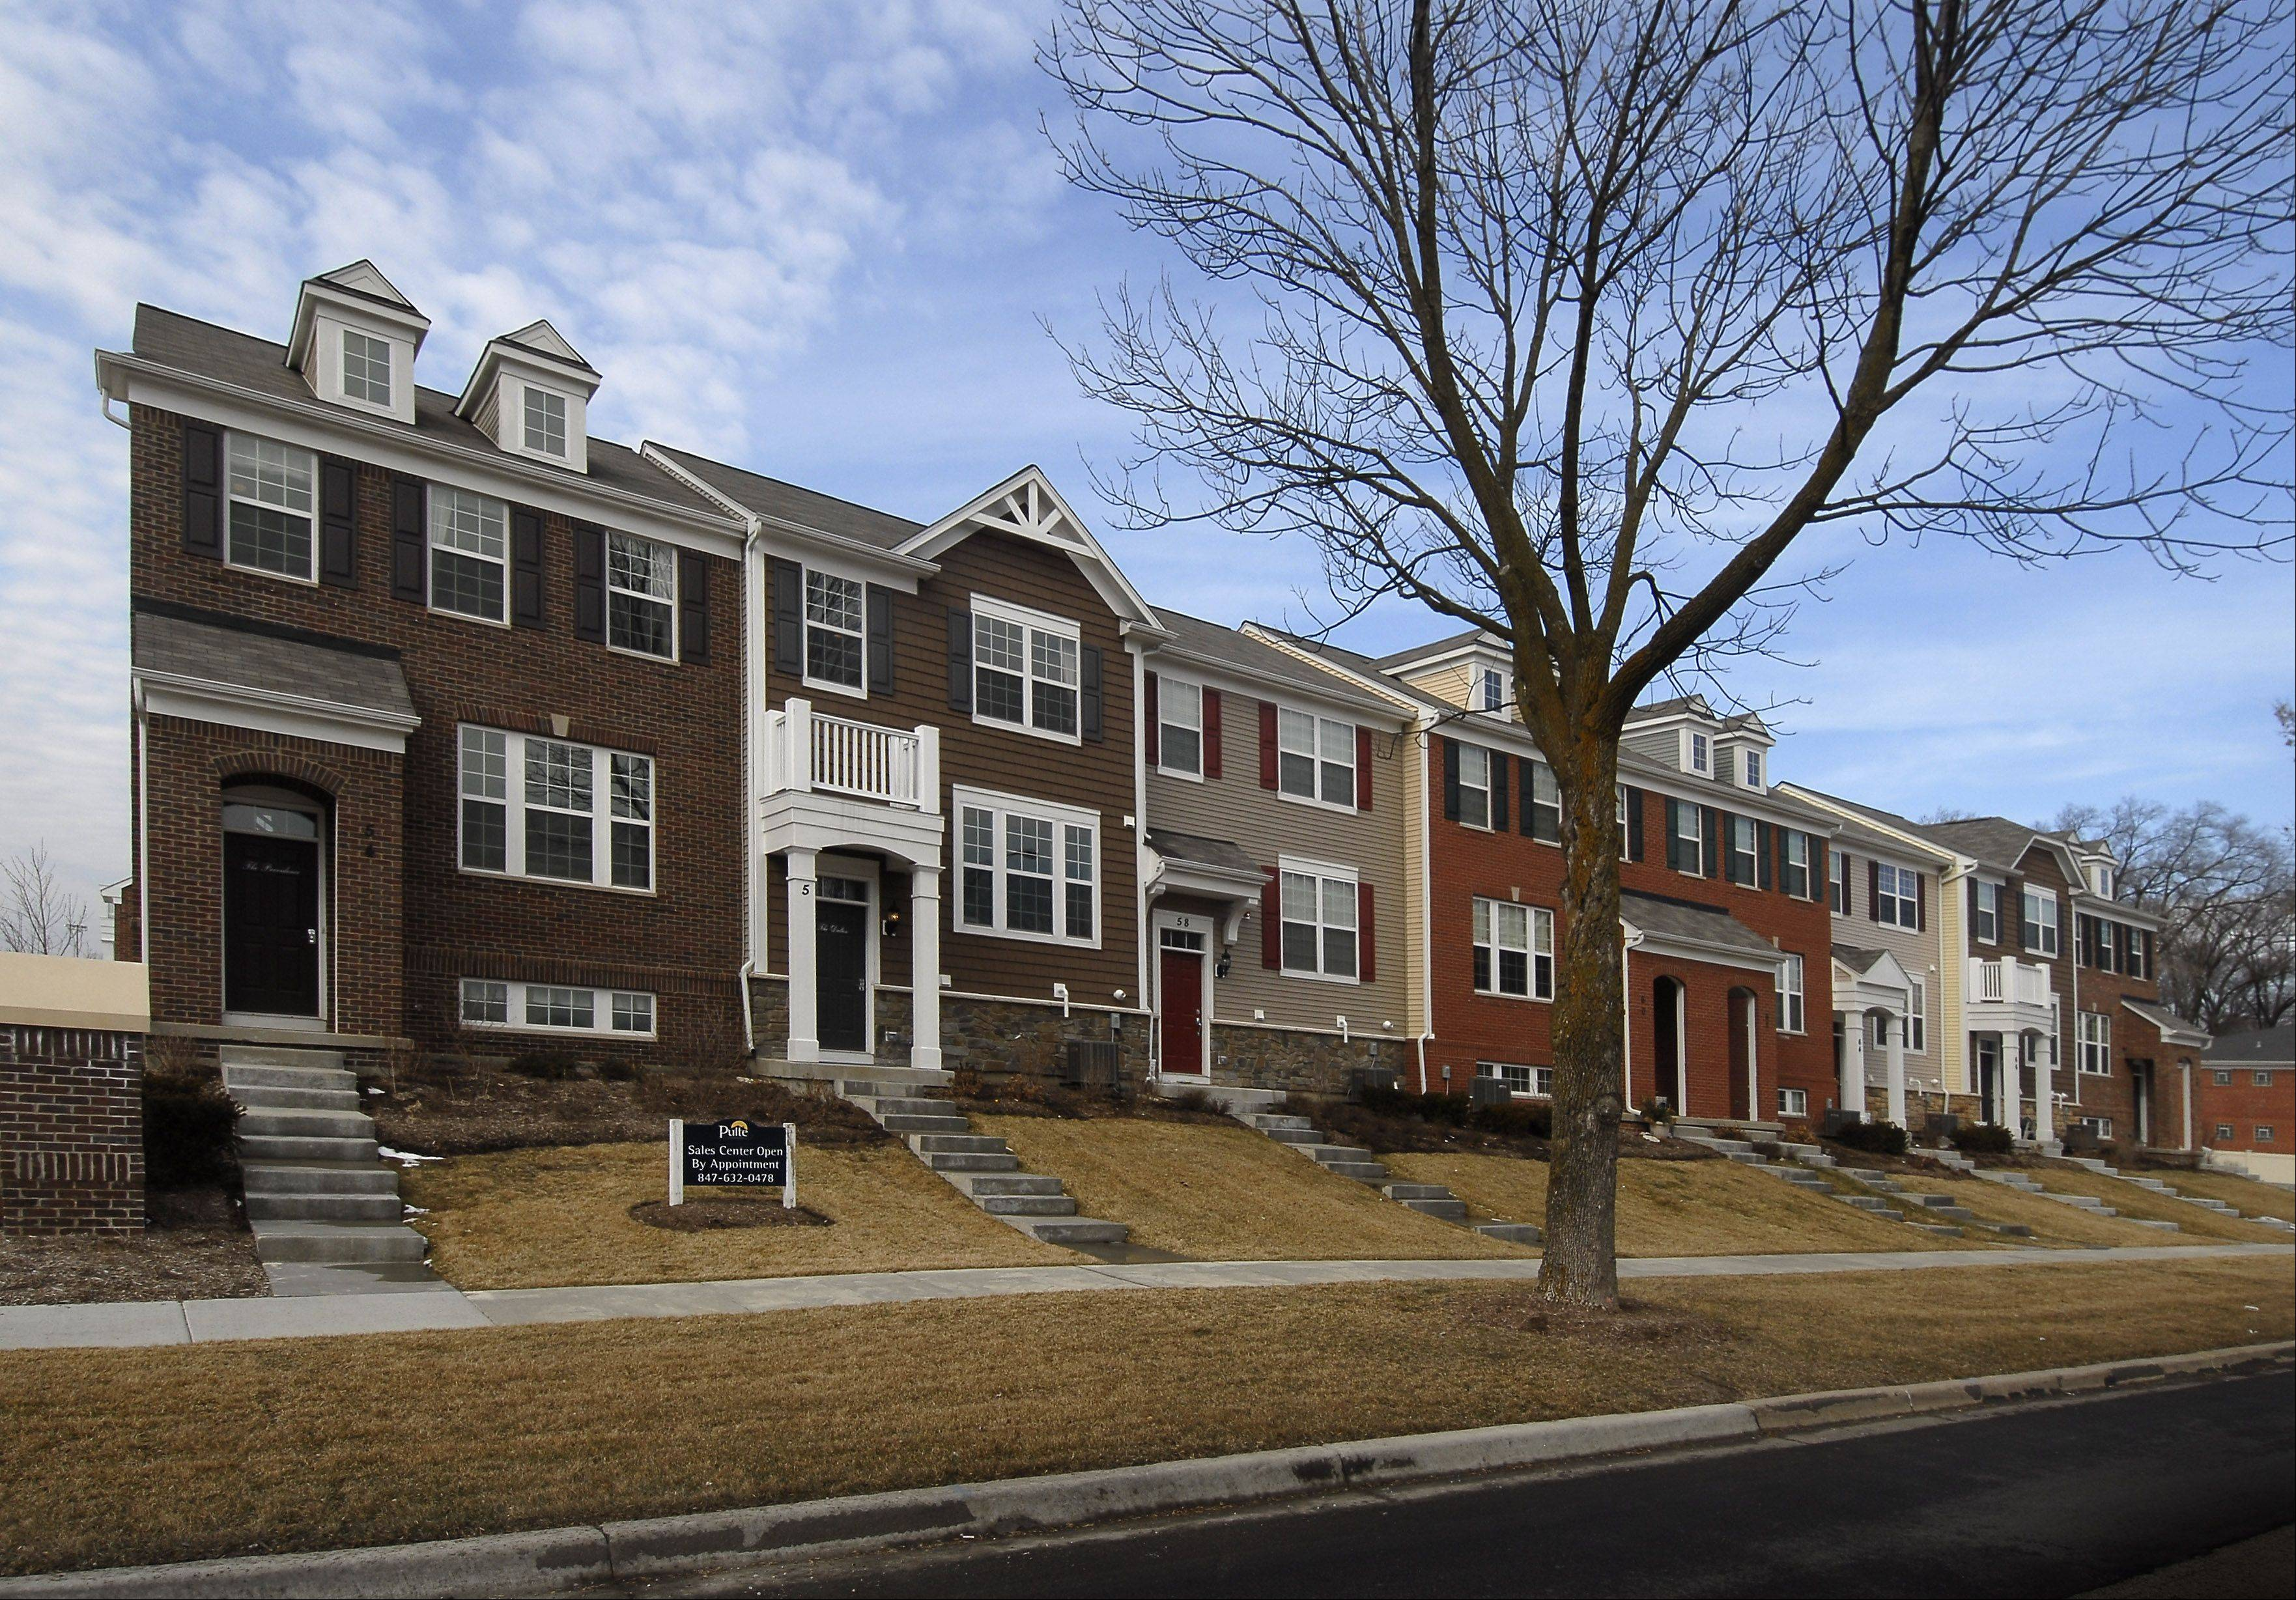 The Arlington Crossings row houses are located a block away from shopping and dining spots in Arlington Heights.